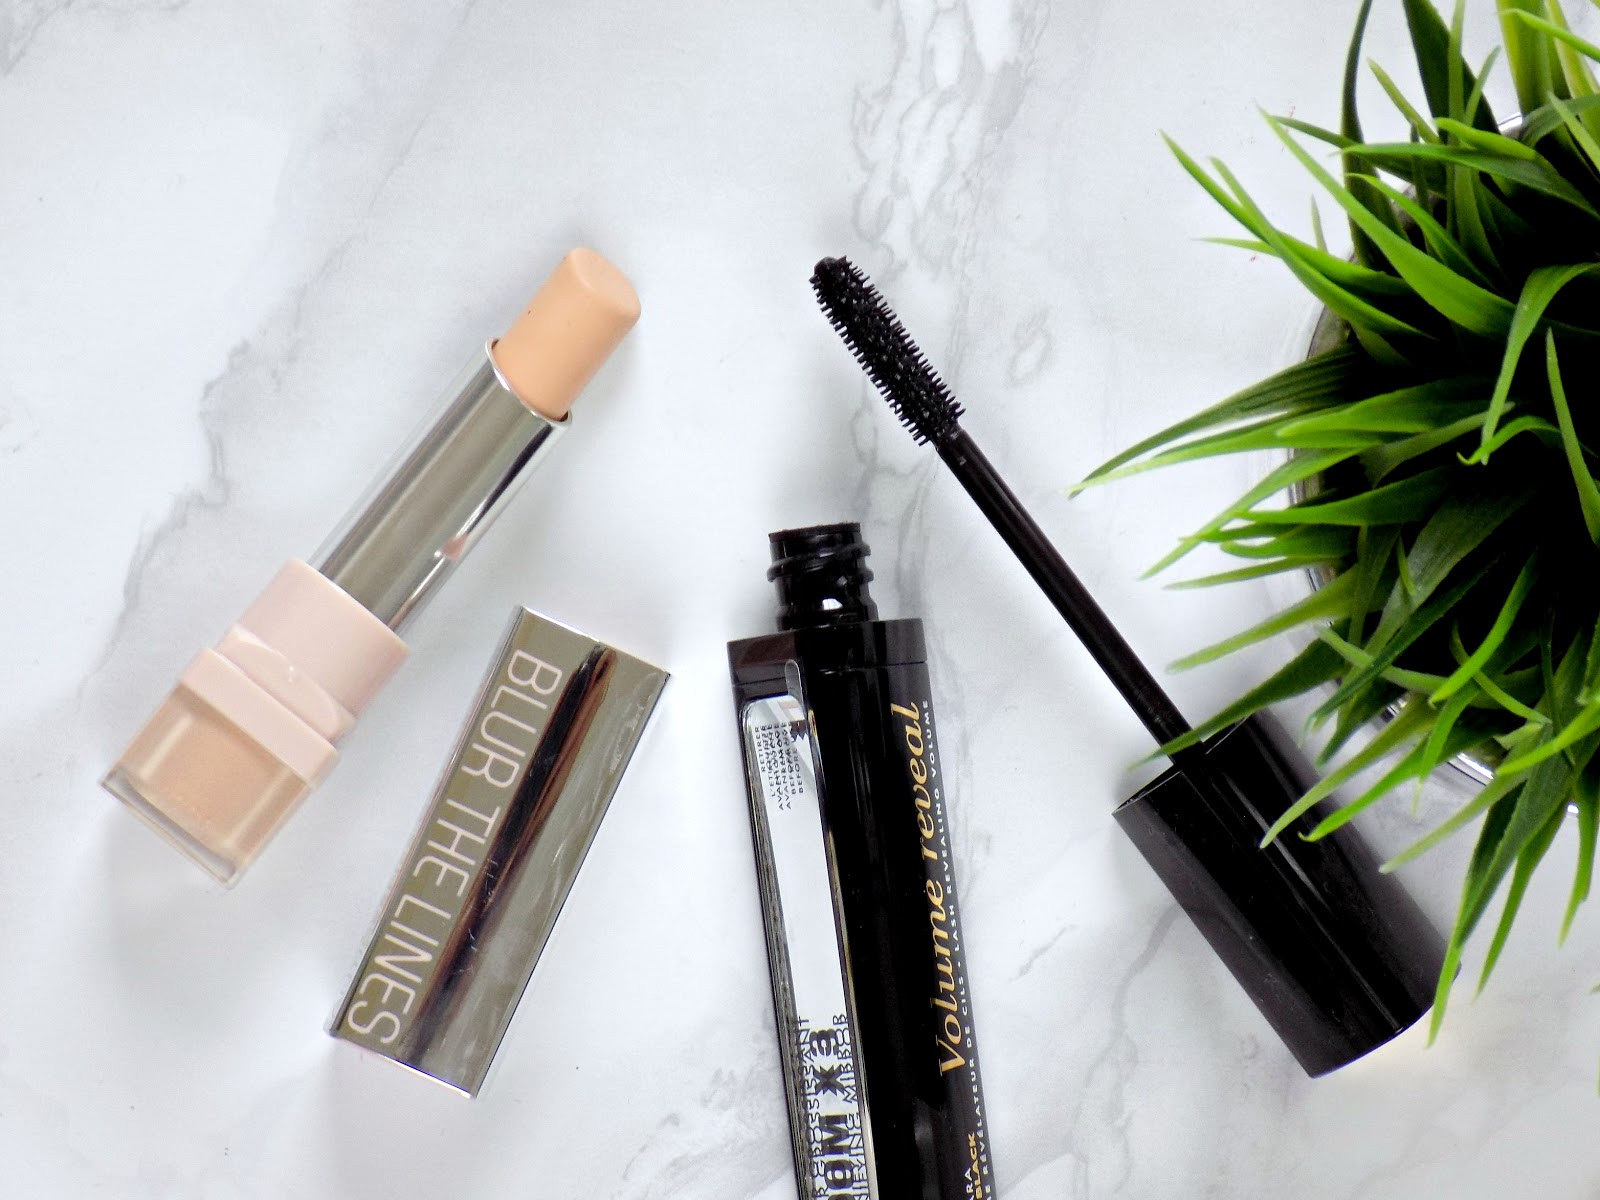 Bourjois blur the lines concealer and volume reveal mascara